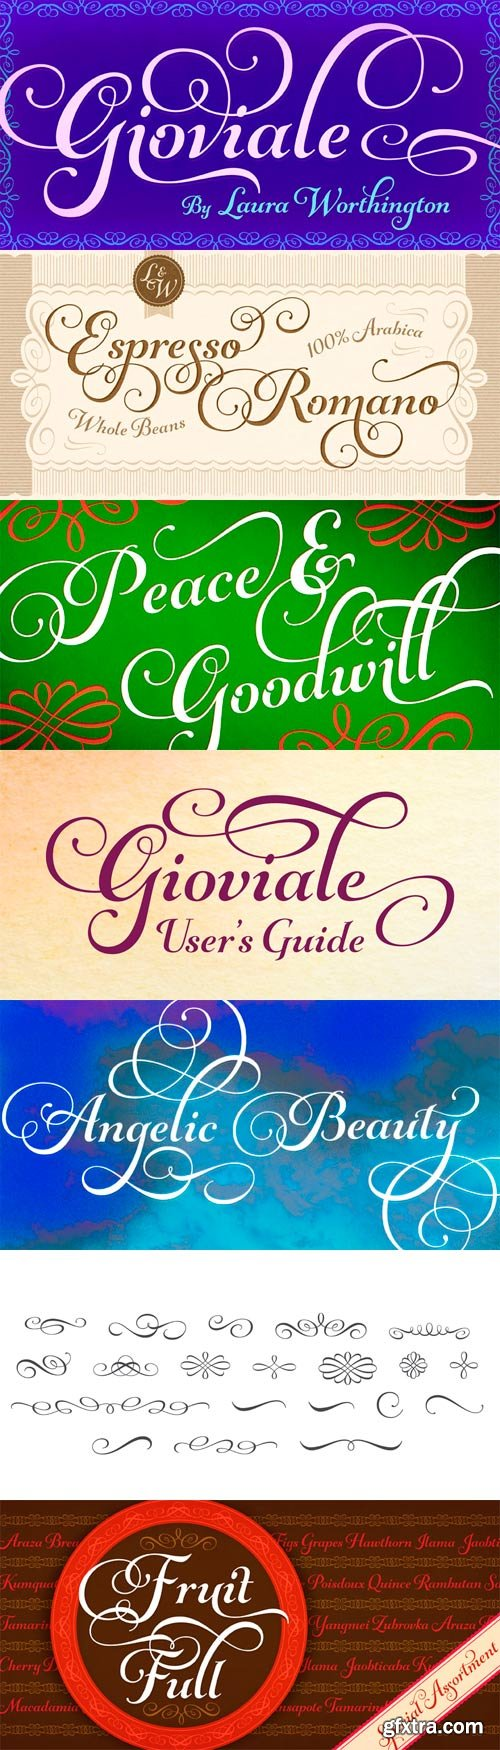 Gioviale Font Family - 2 Fonts for $70